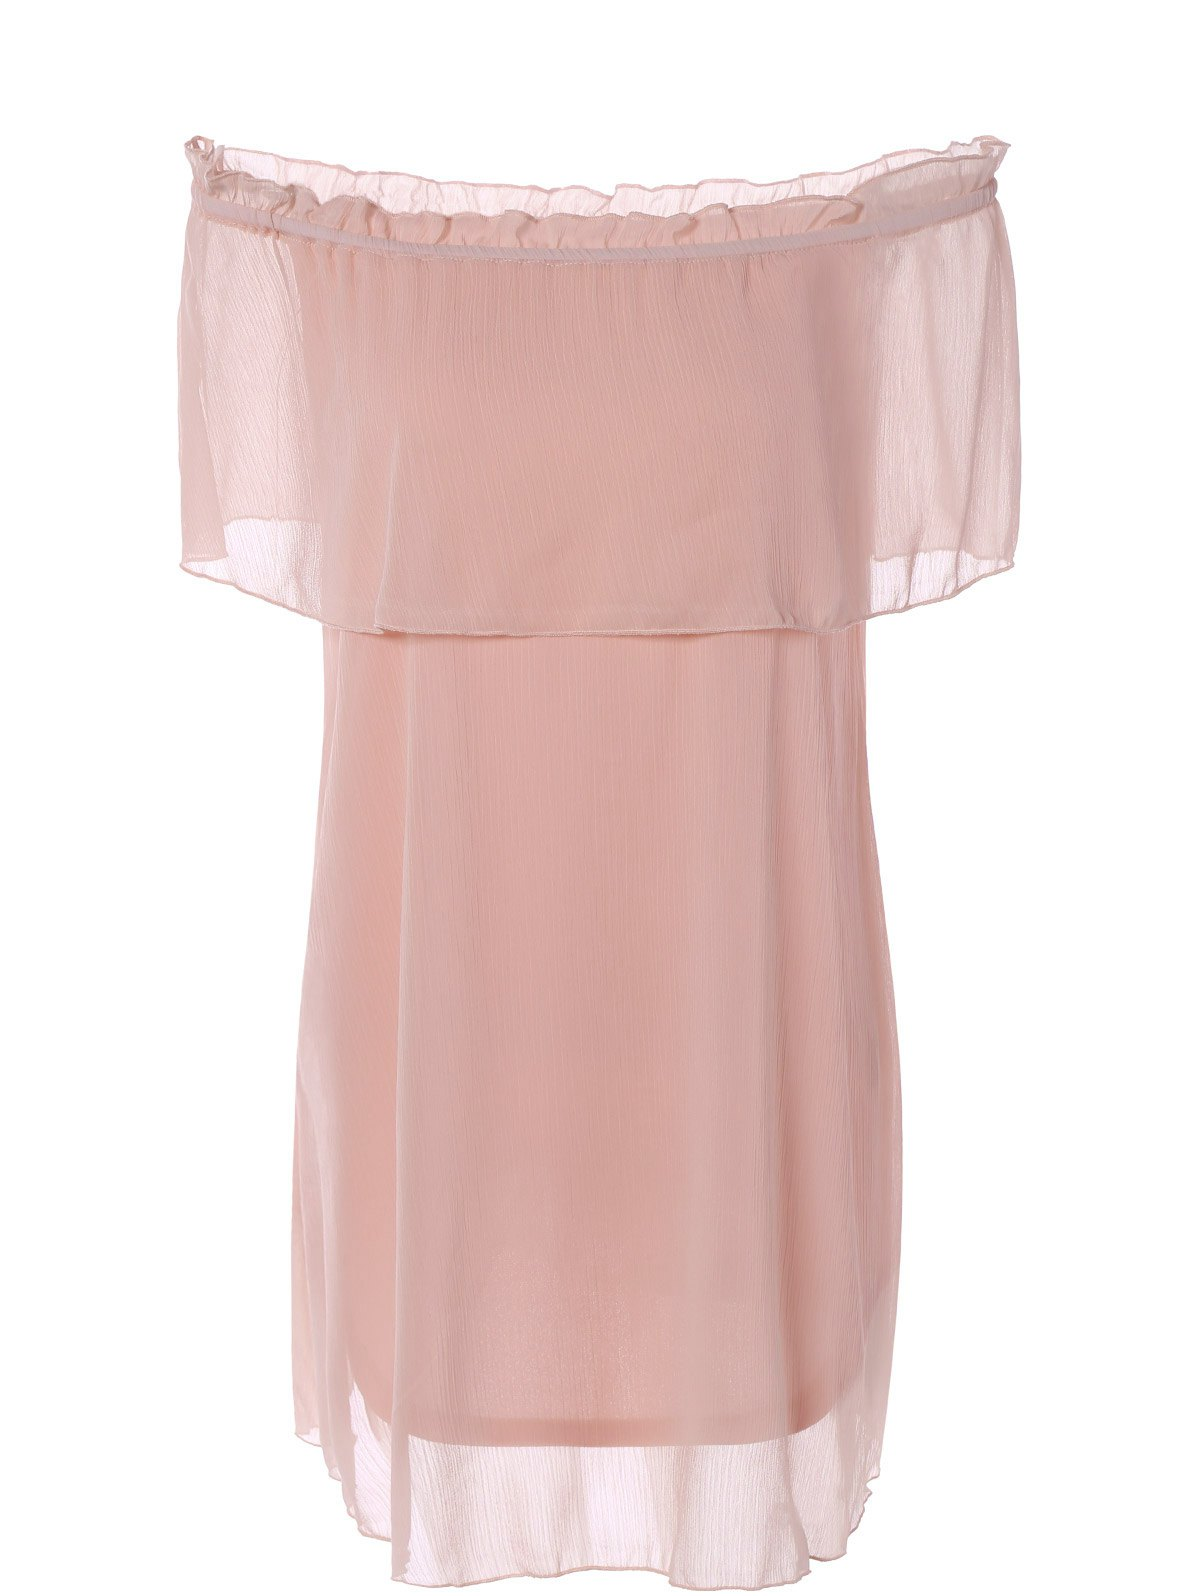 Off The Shoulder Flounce Ruffles Chiffon Dress